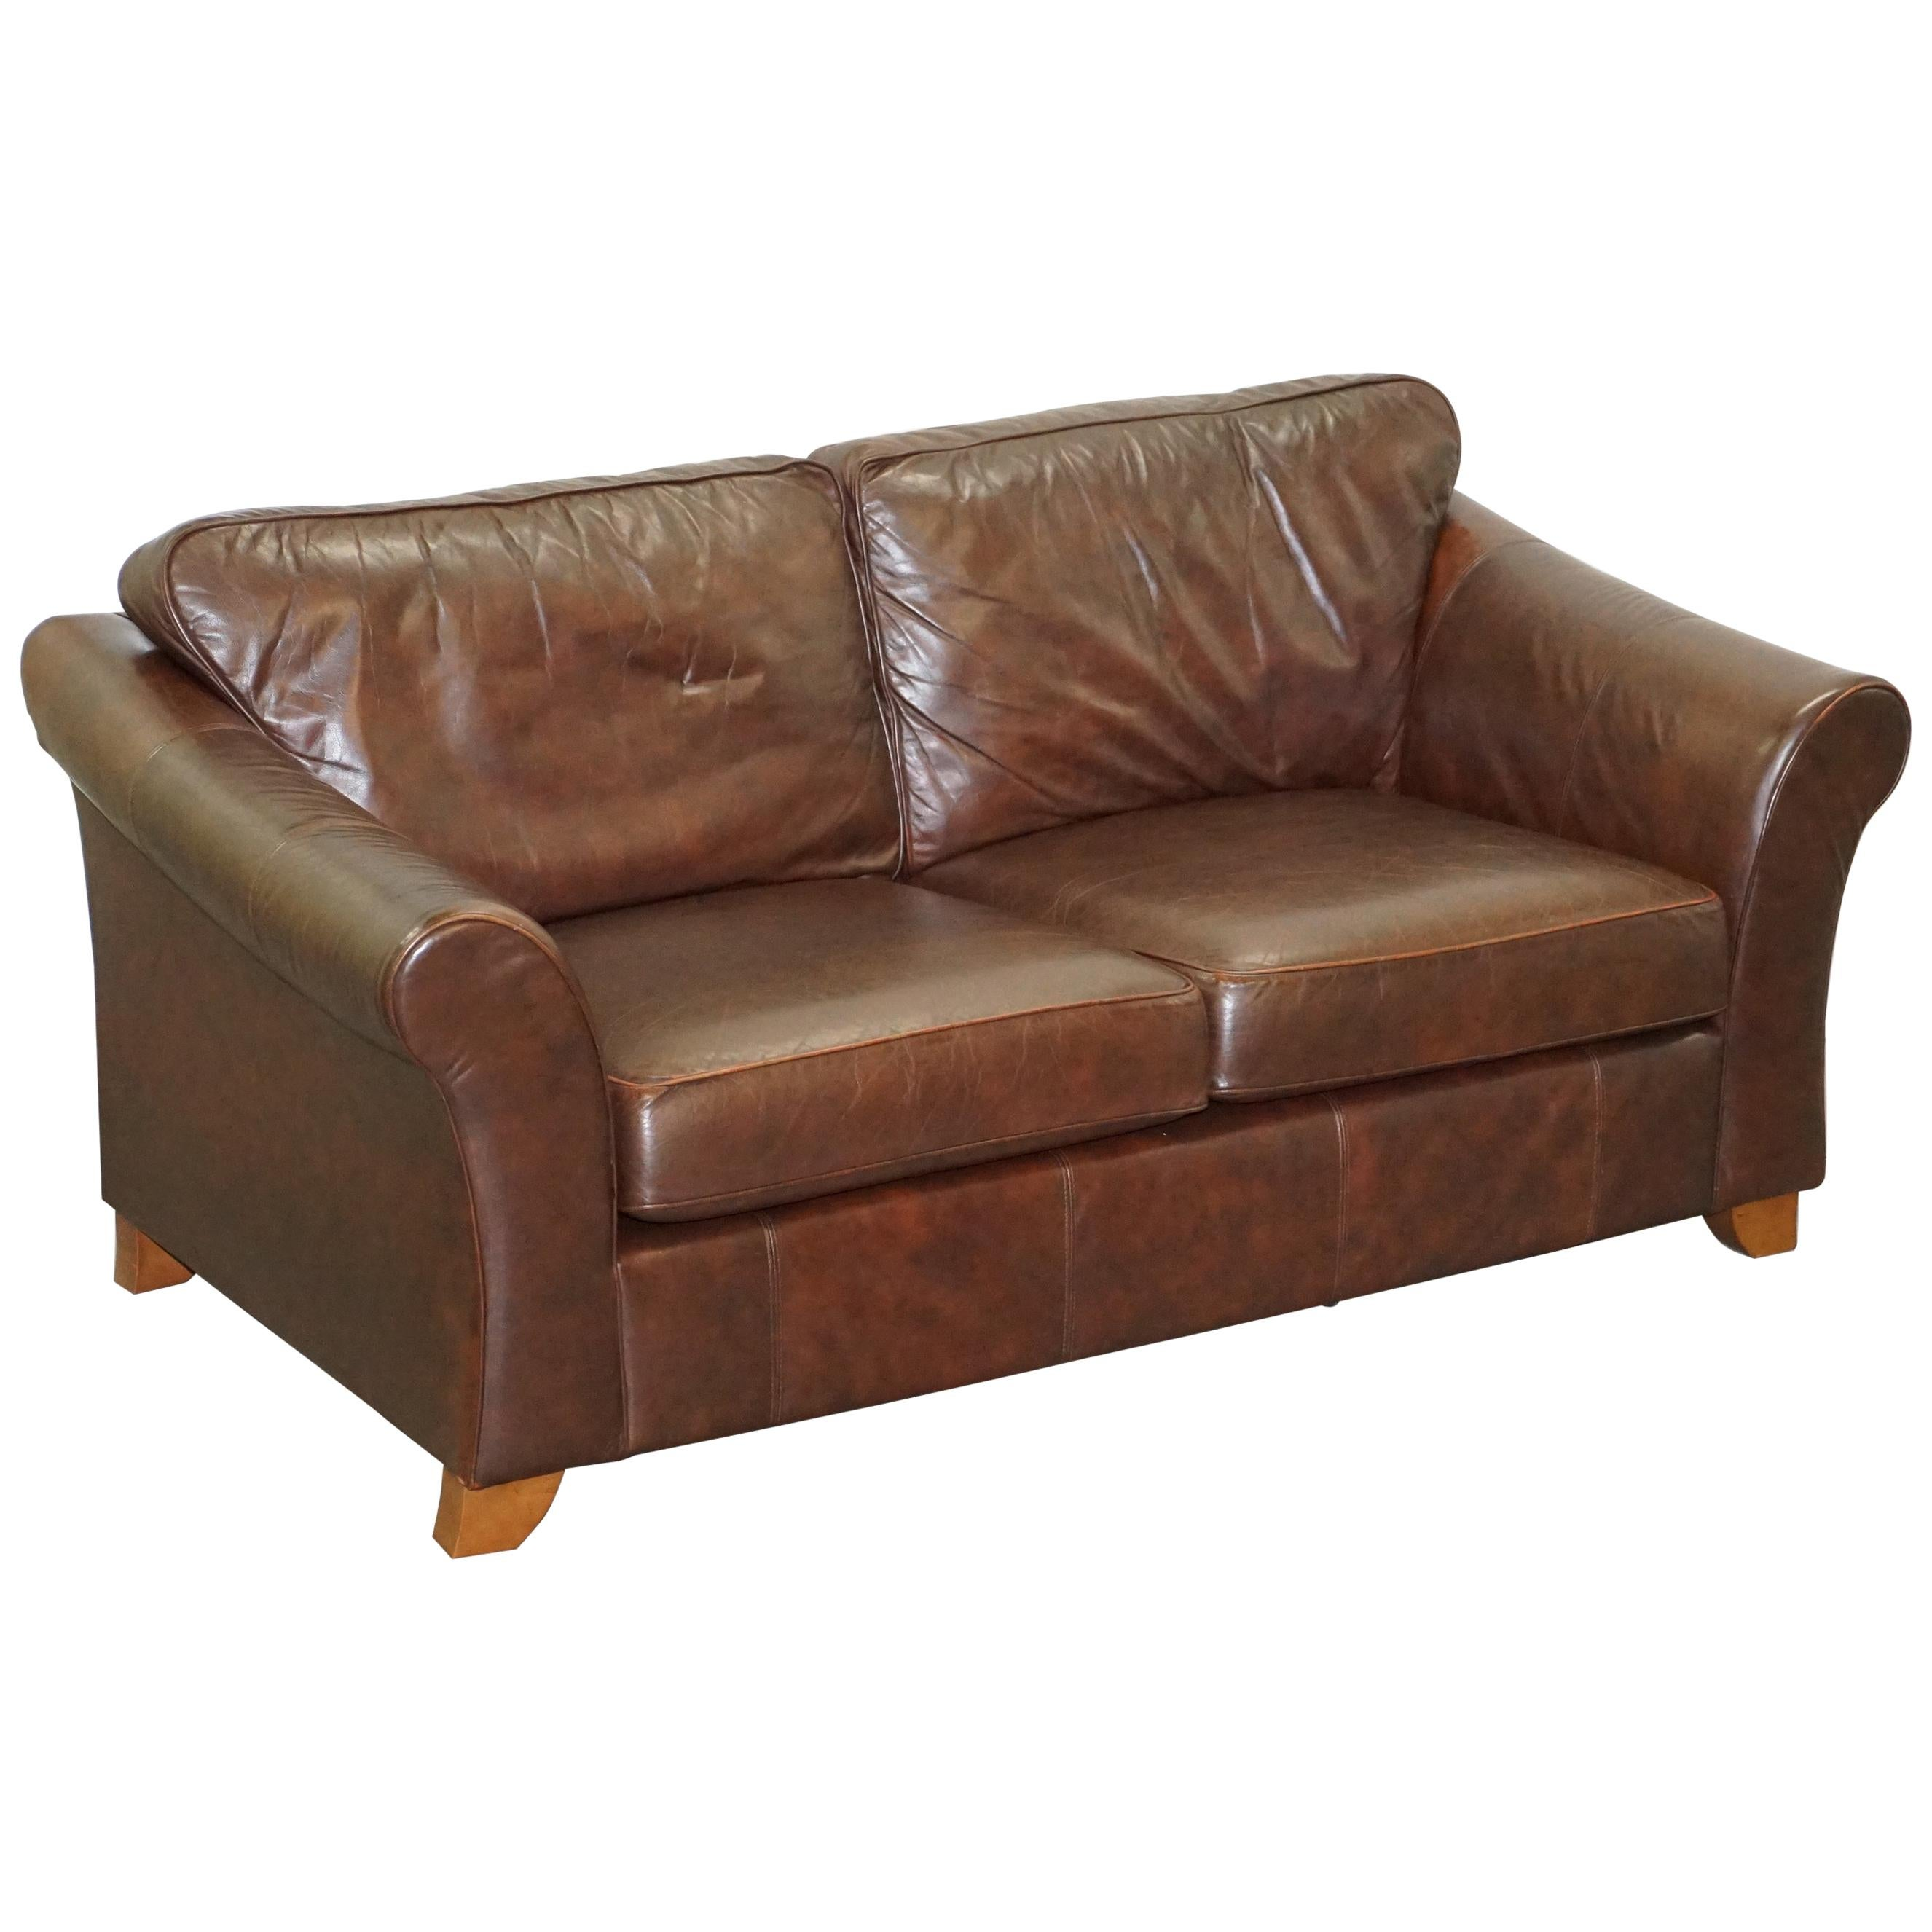 Marks & Spnecers Abbey Brown Leather Sofa Part of Suite with Armchairs